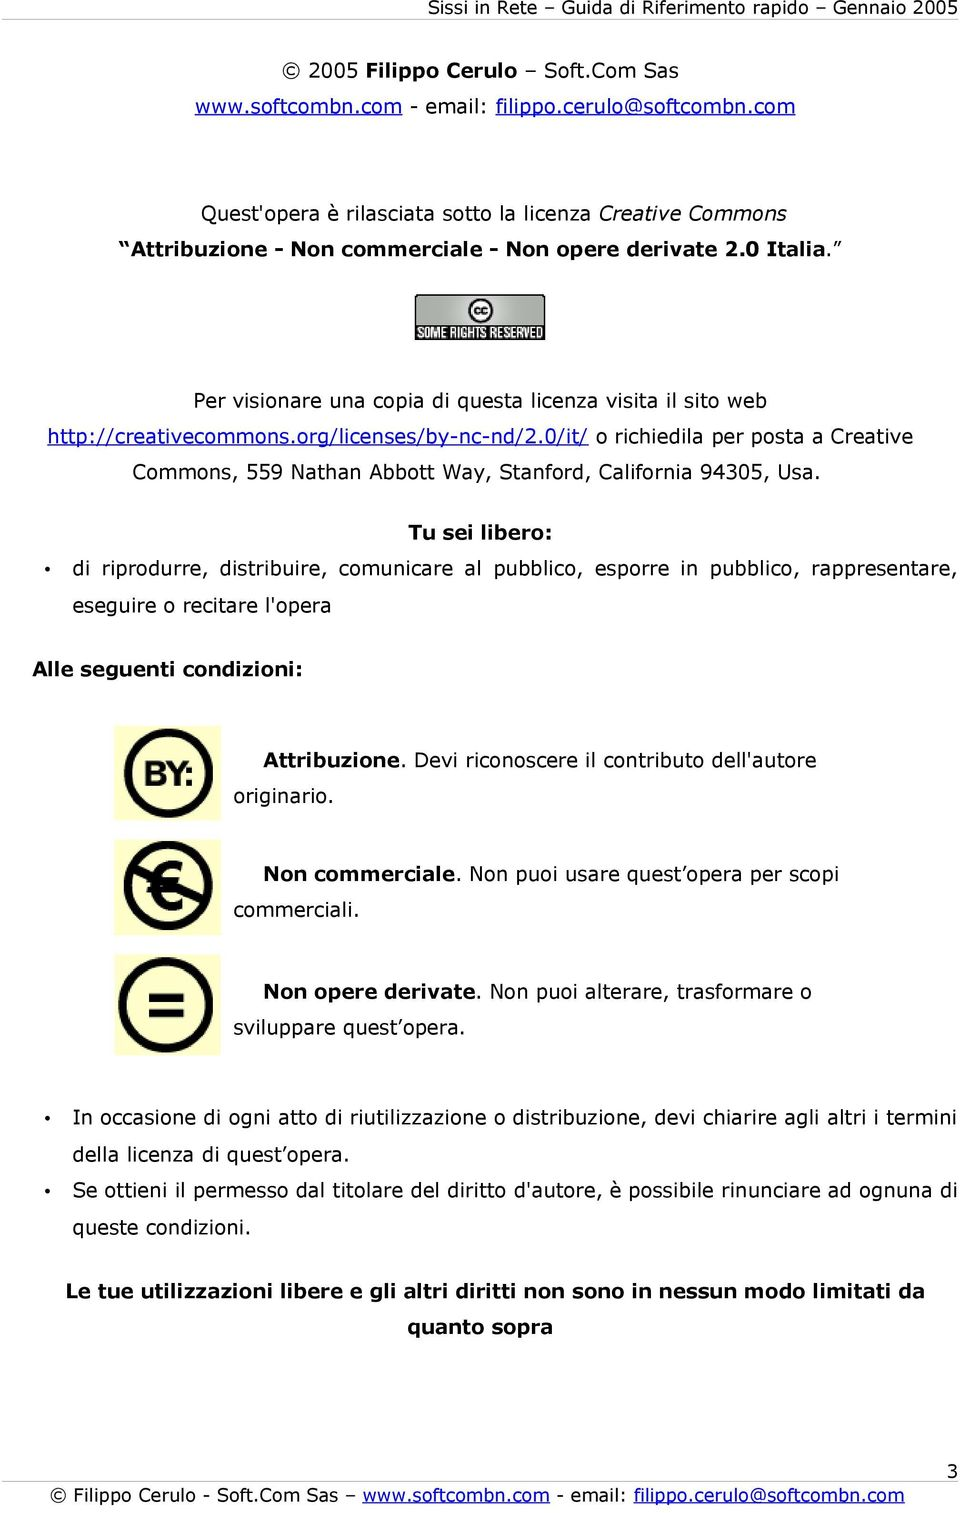 Per visionare una copia di questa licenza visita il sito web http://creativecommons.org/licenses/by-nc-nd/2.